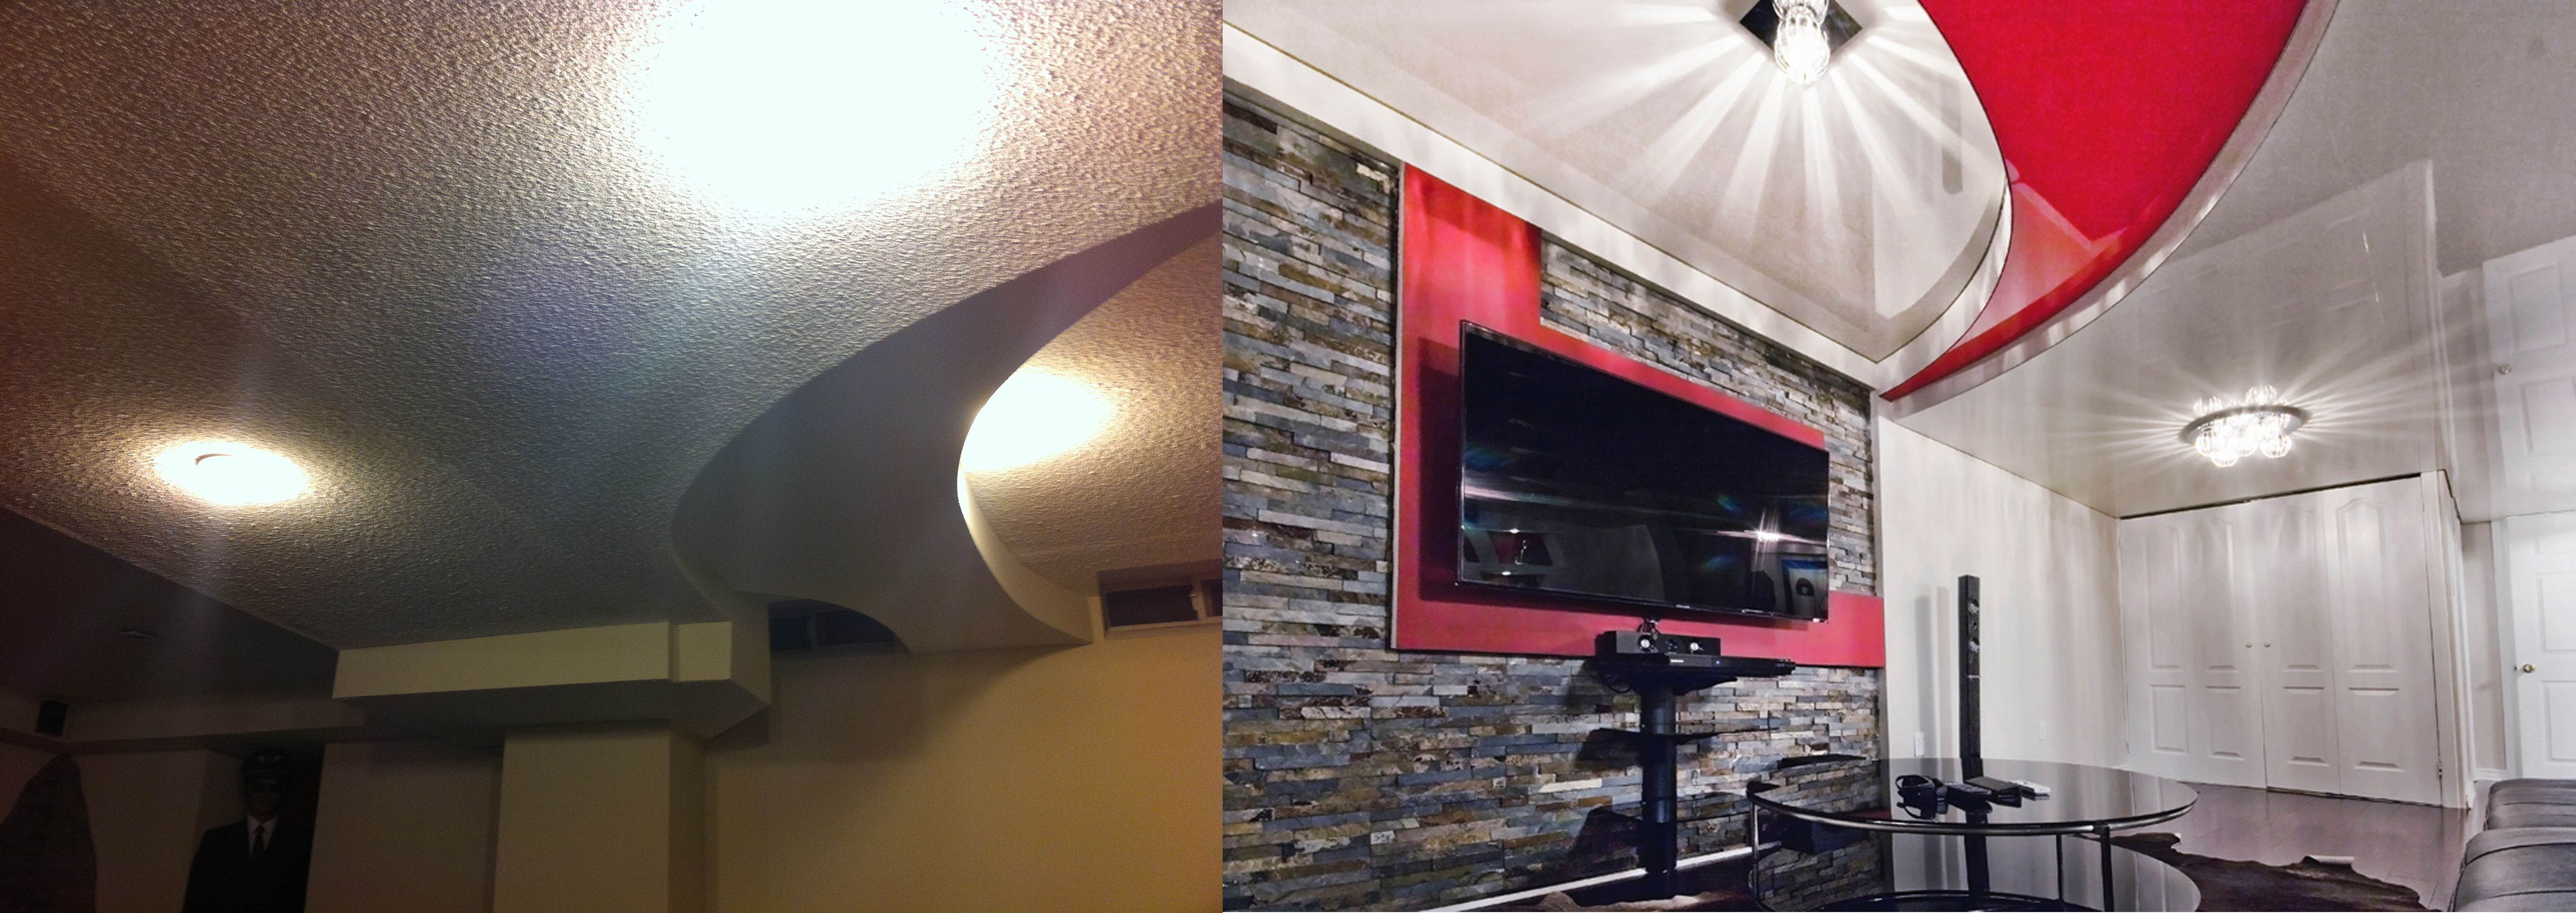 Before and after stretched ceiling installation in a